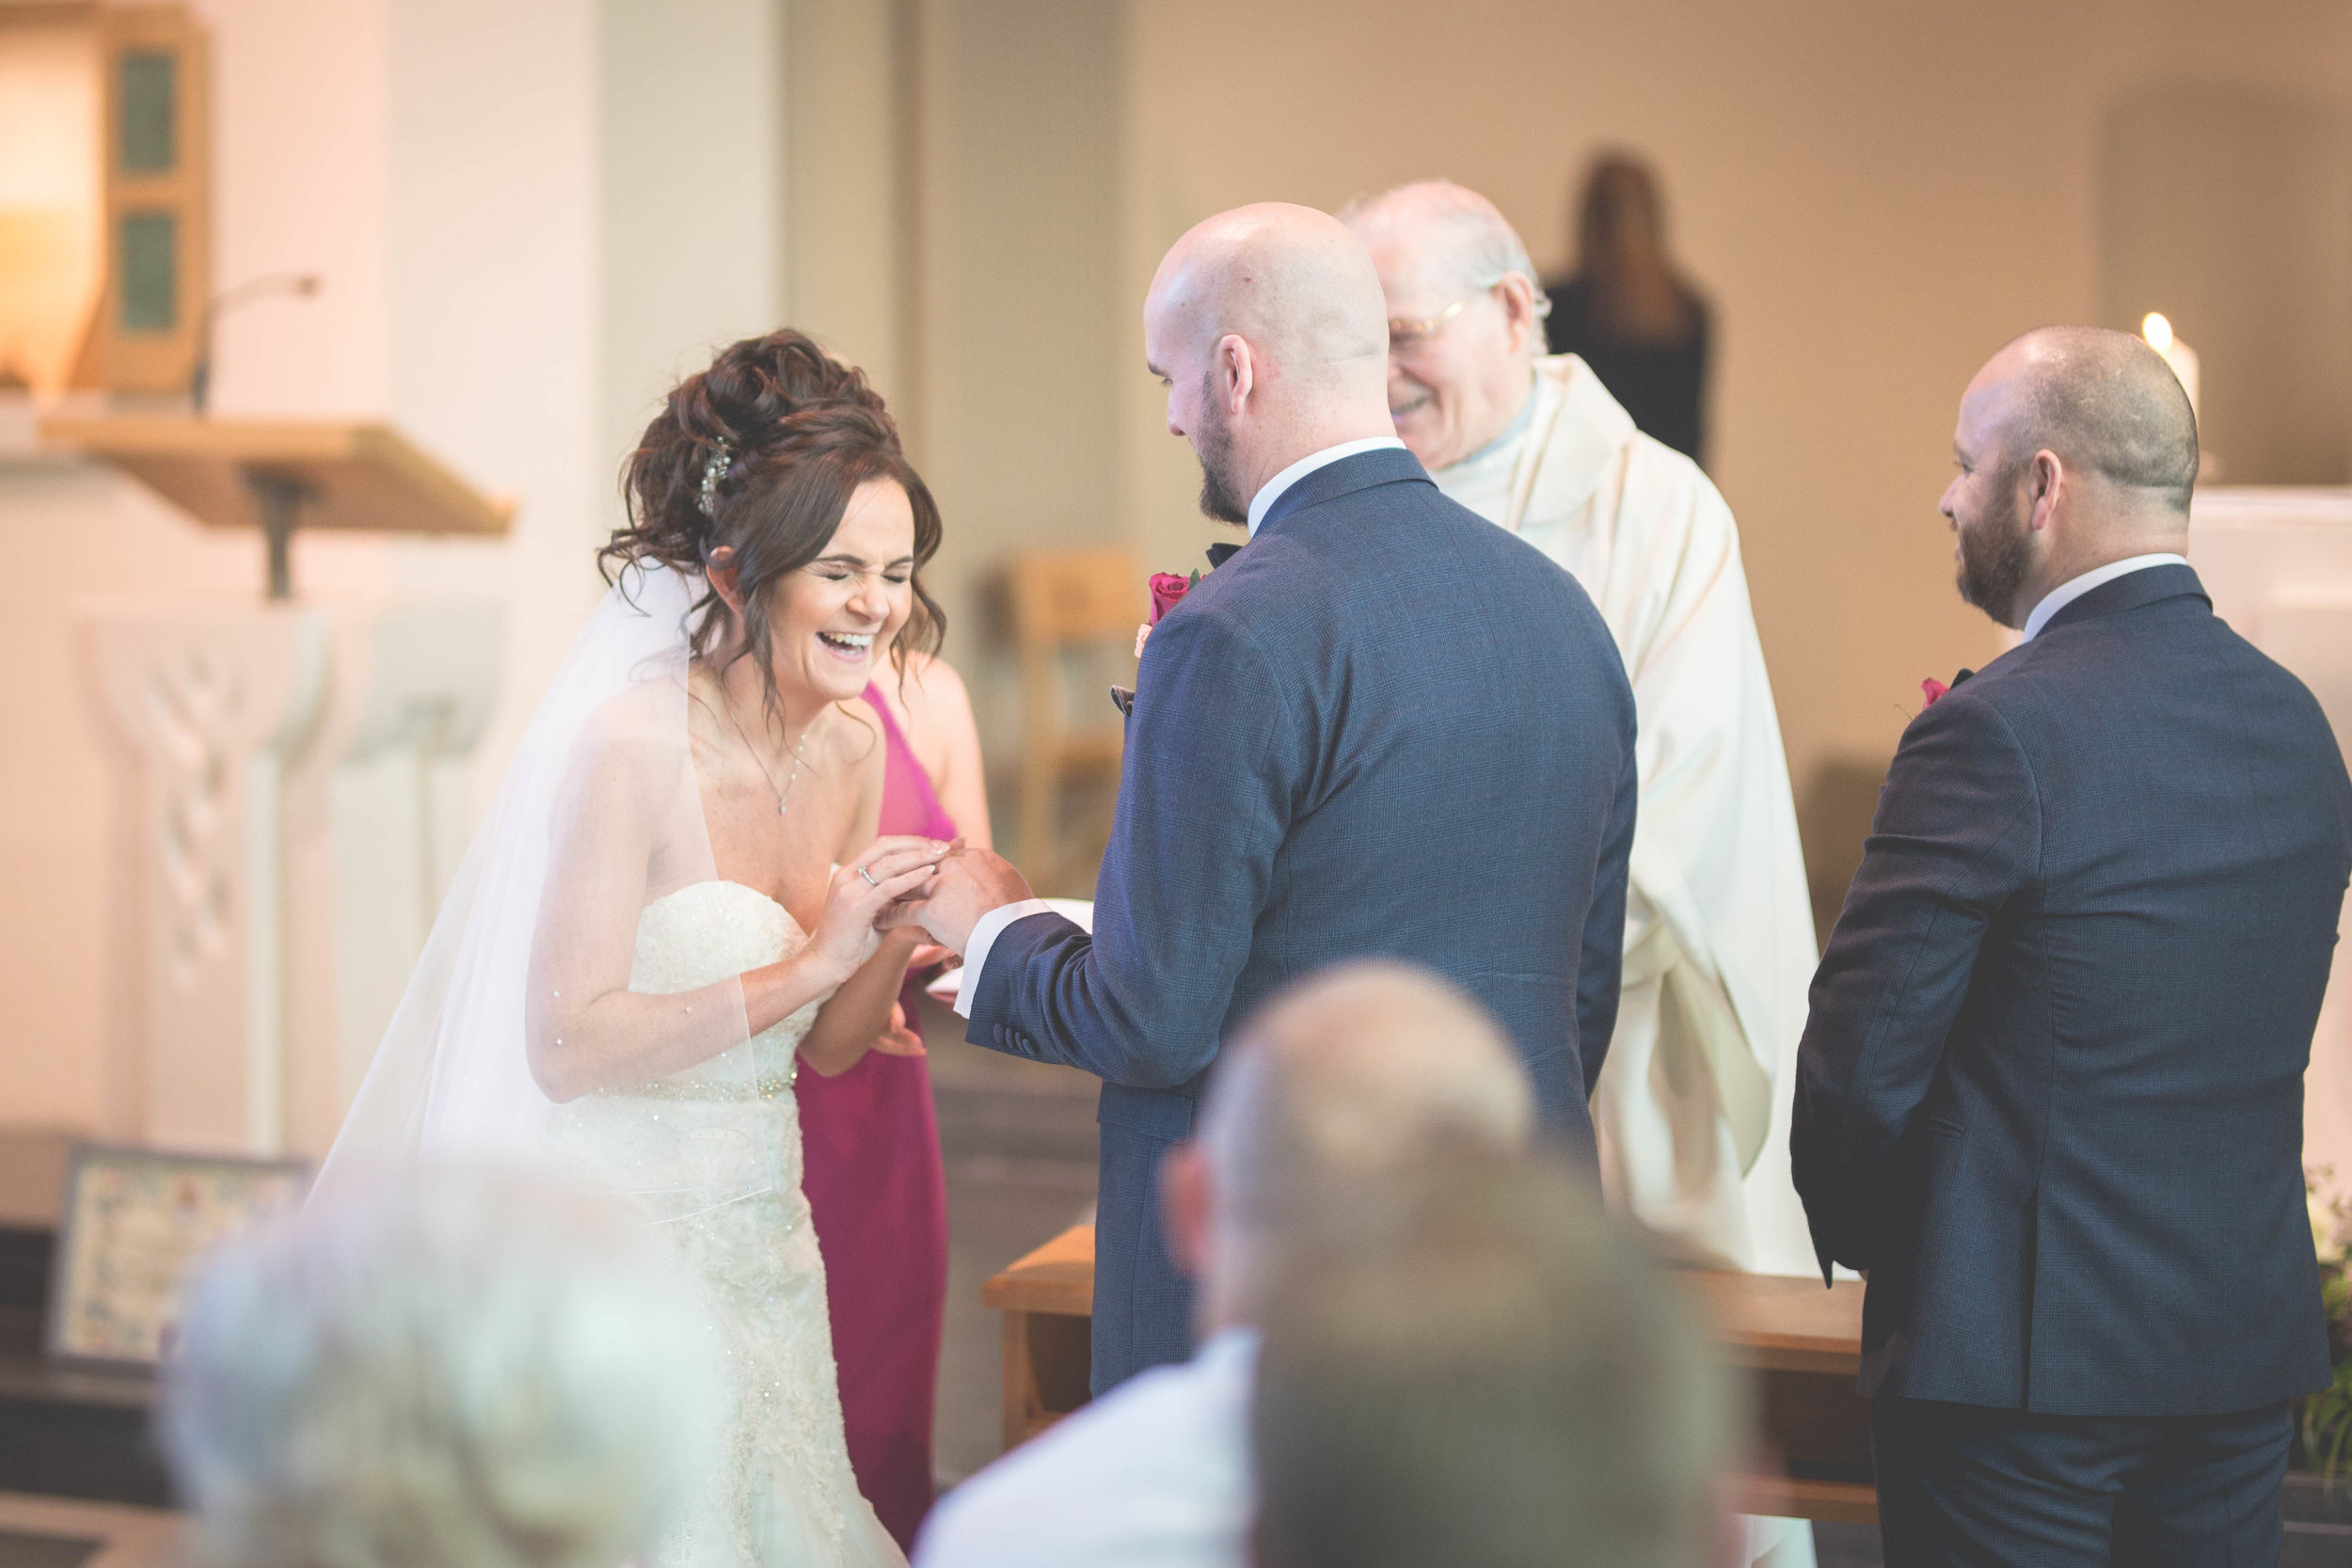 Northern Ireland Wedding Photographer | Brian McEwan Photography | Affordable Wedding Photography Throughout Antrim Down Armagh Tyrone Londonderry Derry Down Fermanagh -40.jpg